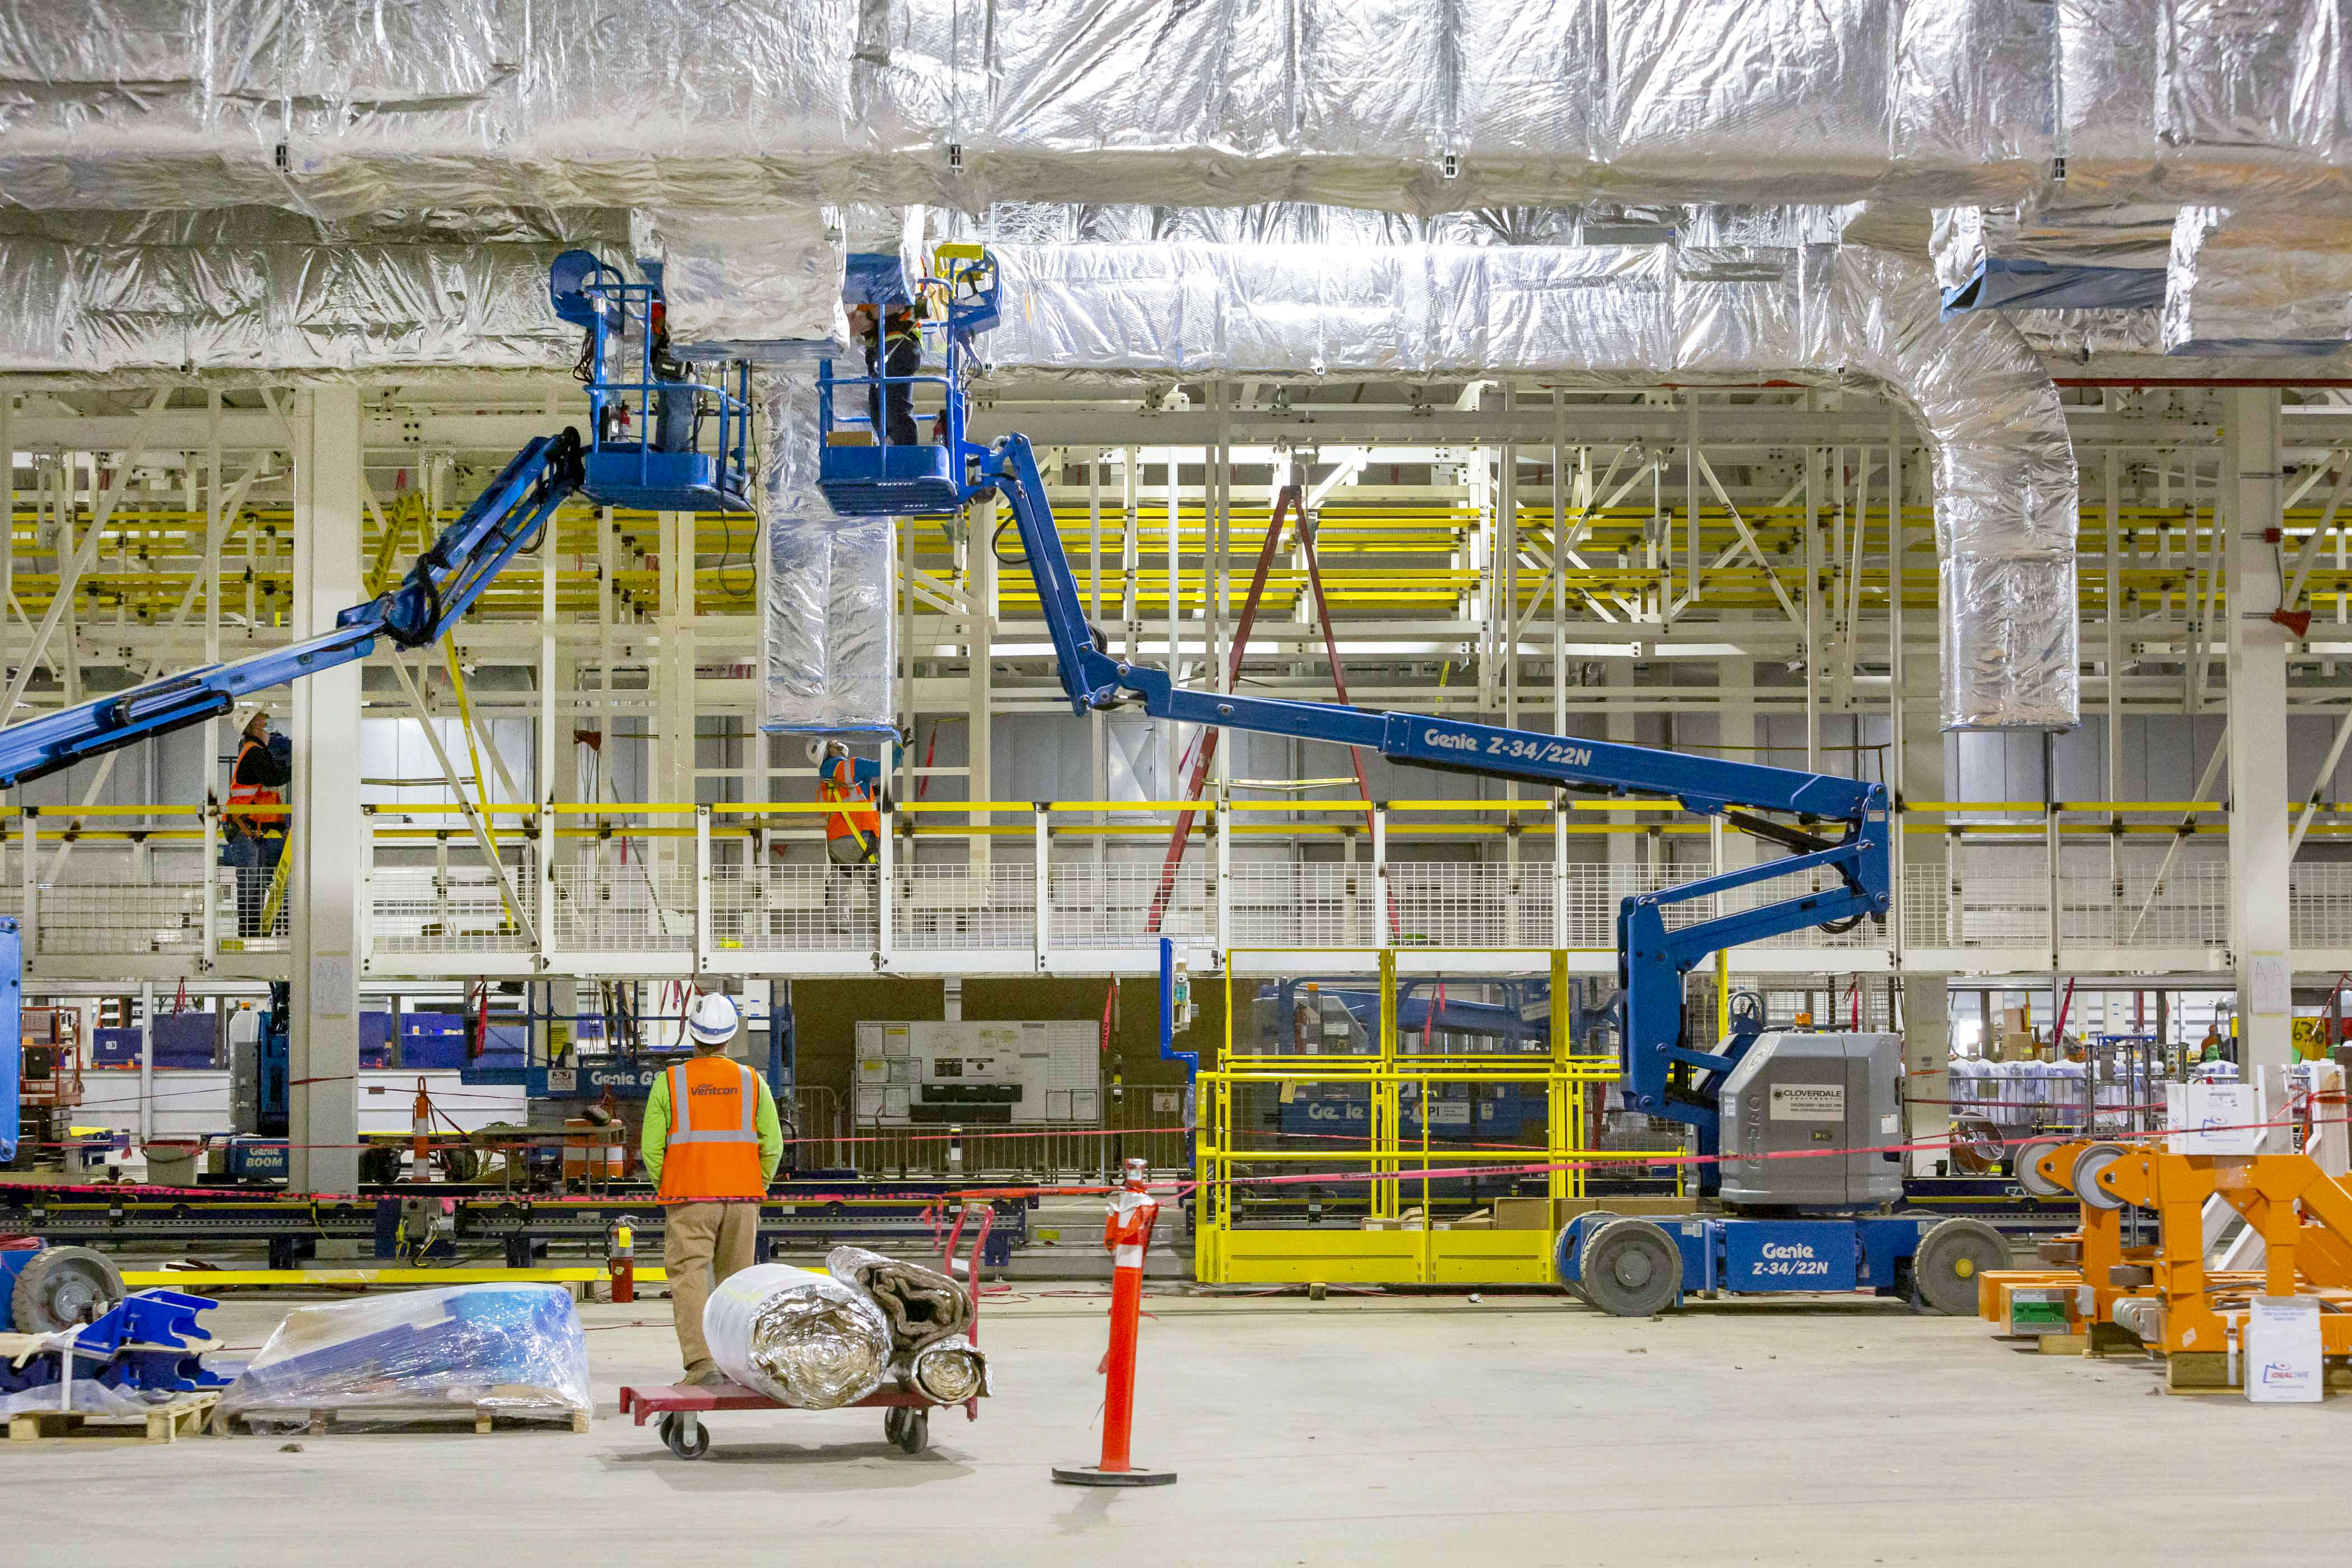 Factory Zero is completely retooled with an investment of USD2.2 billion, the largest ever for a GM manufacturing facility. Once fully operational, the plant will create more than 2,200 US manufacturing jobs.